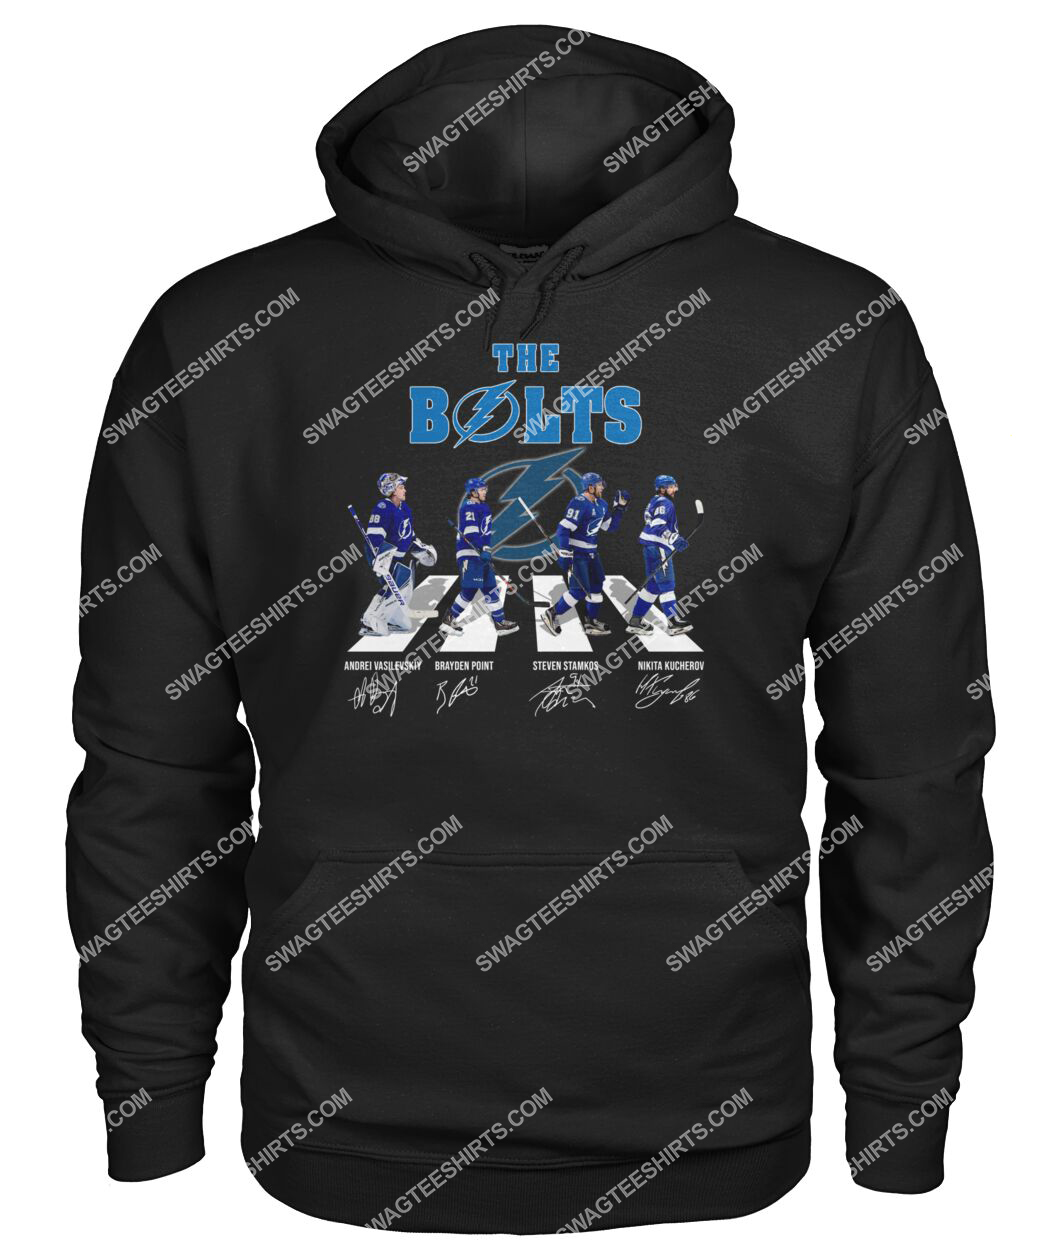 abbey road the bolts tampa bay lightning signatures hoodie 1